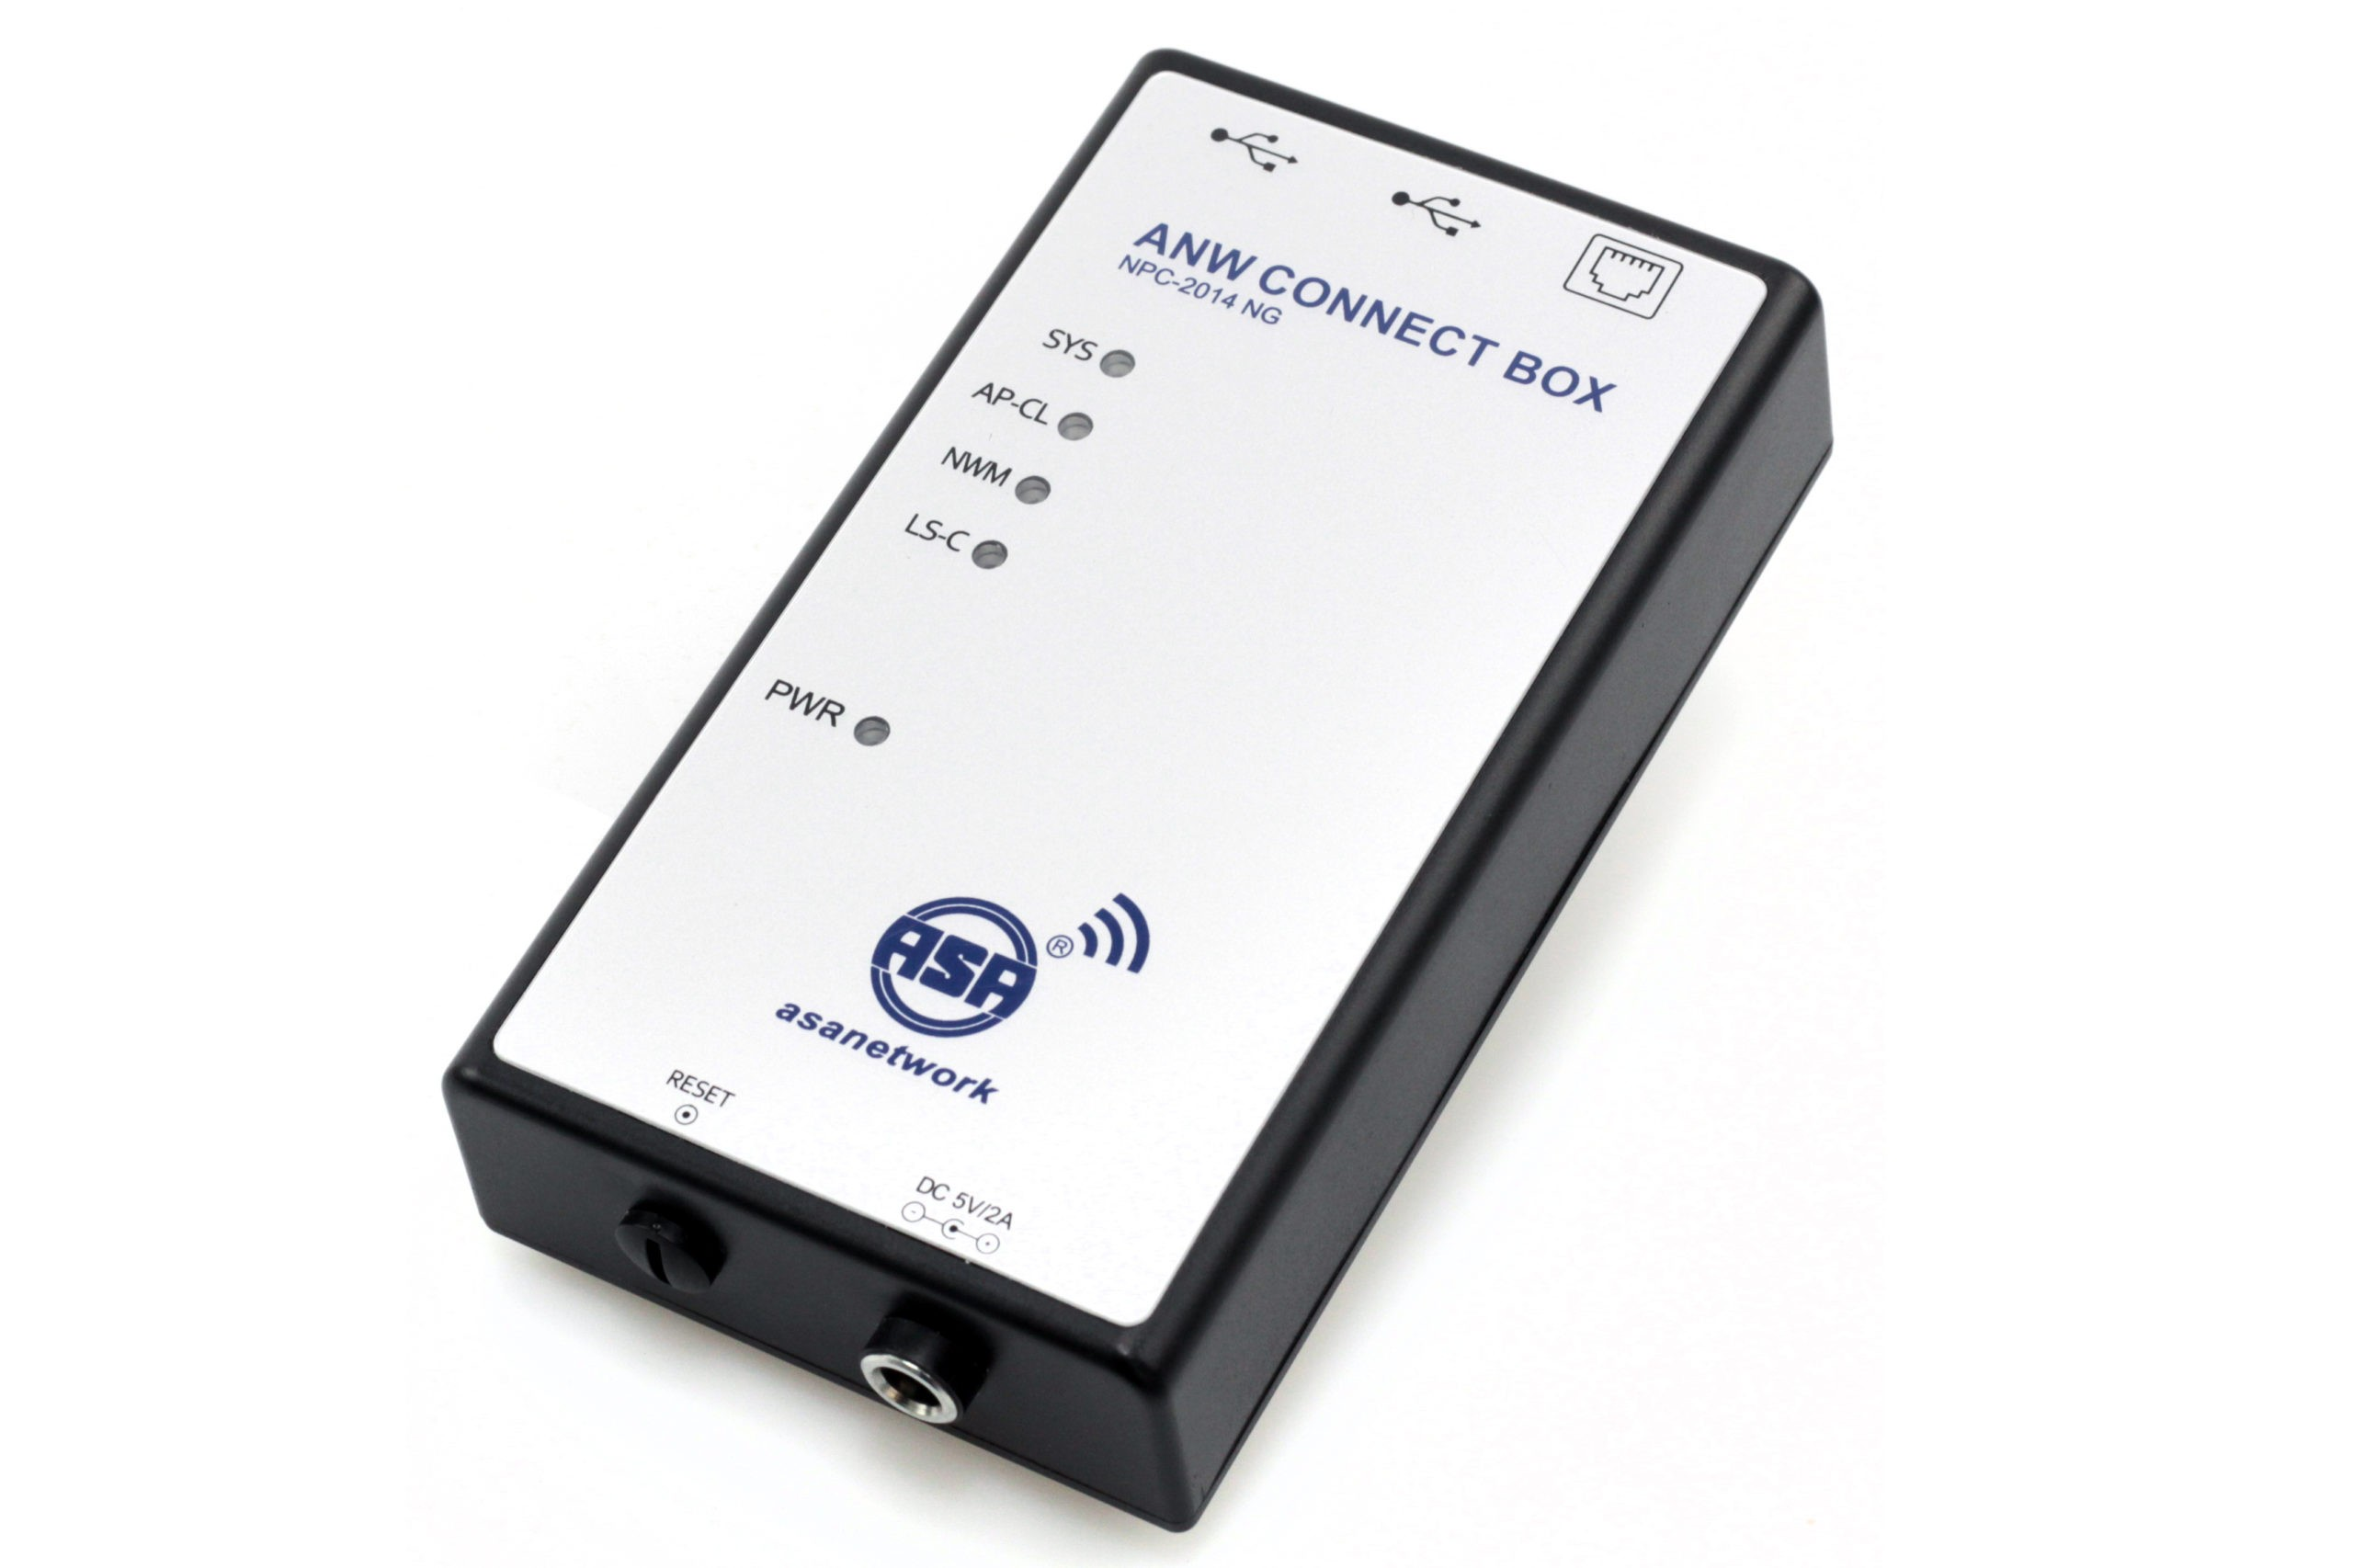 ANW CONNECT BOX